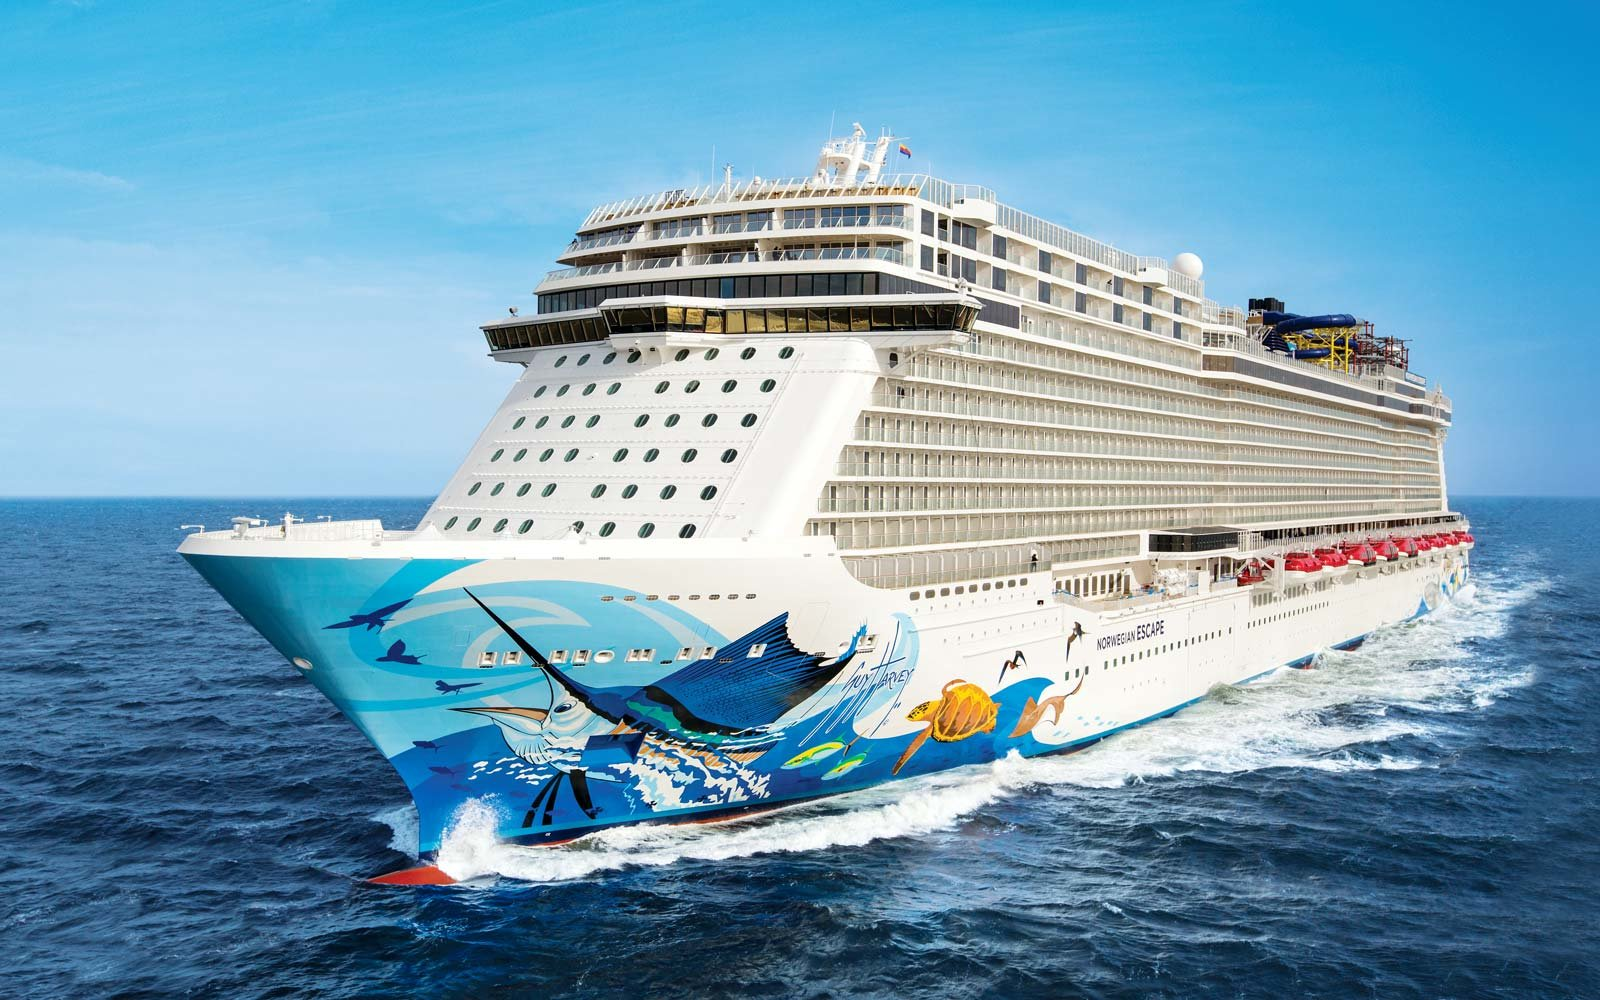 Norwegian Cruise Line Escape